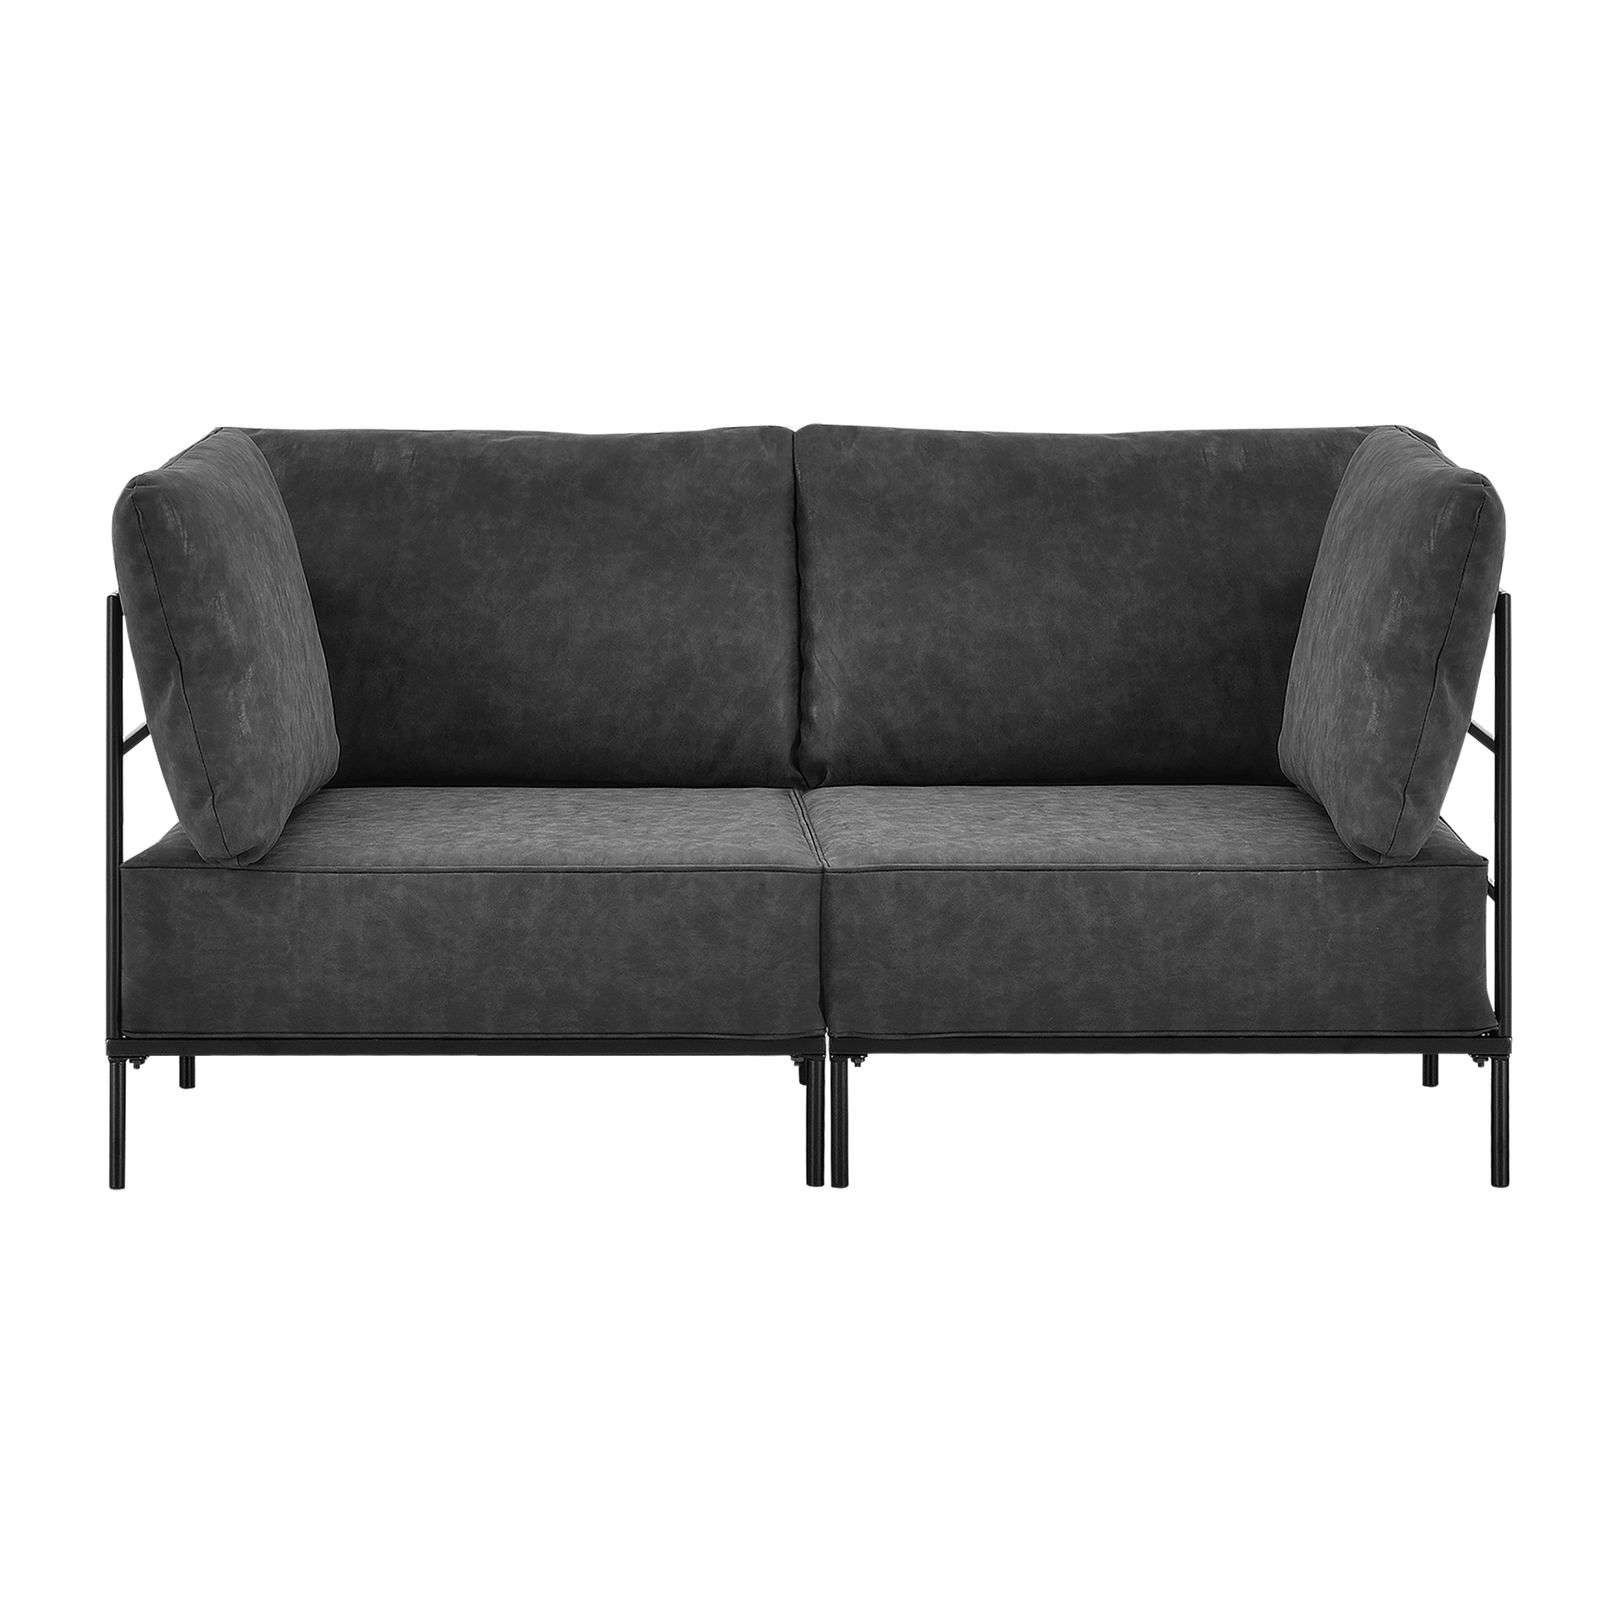 Ideal Polstergarnituren 3 2 1 Sitzer In 2020 Home Decor Home Love Seat